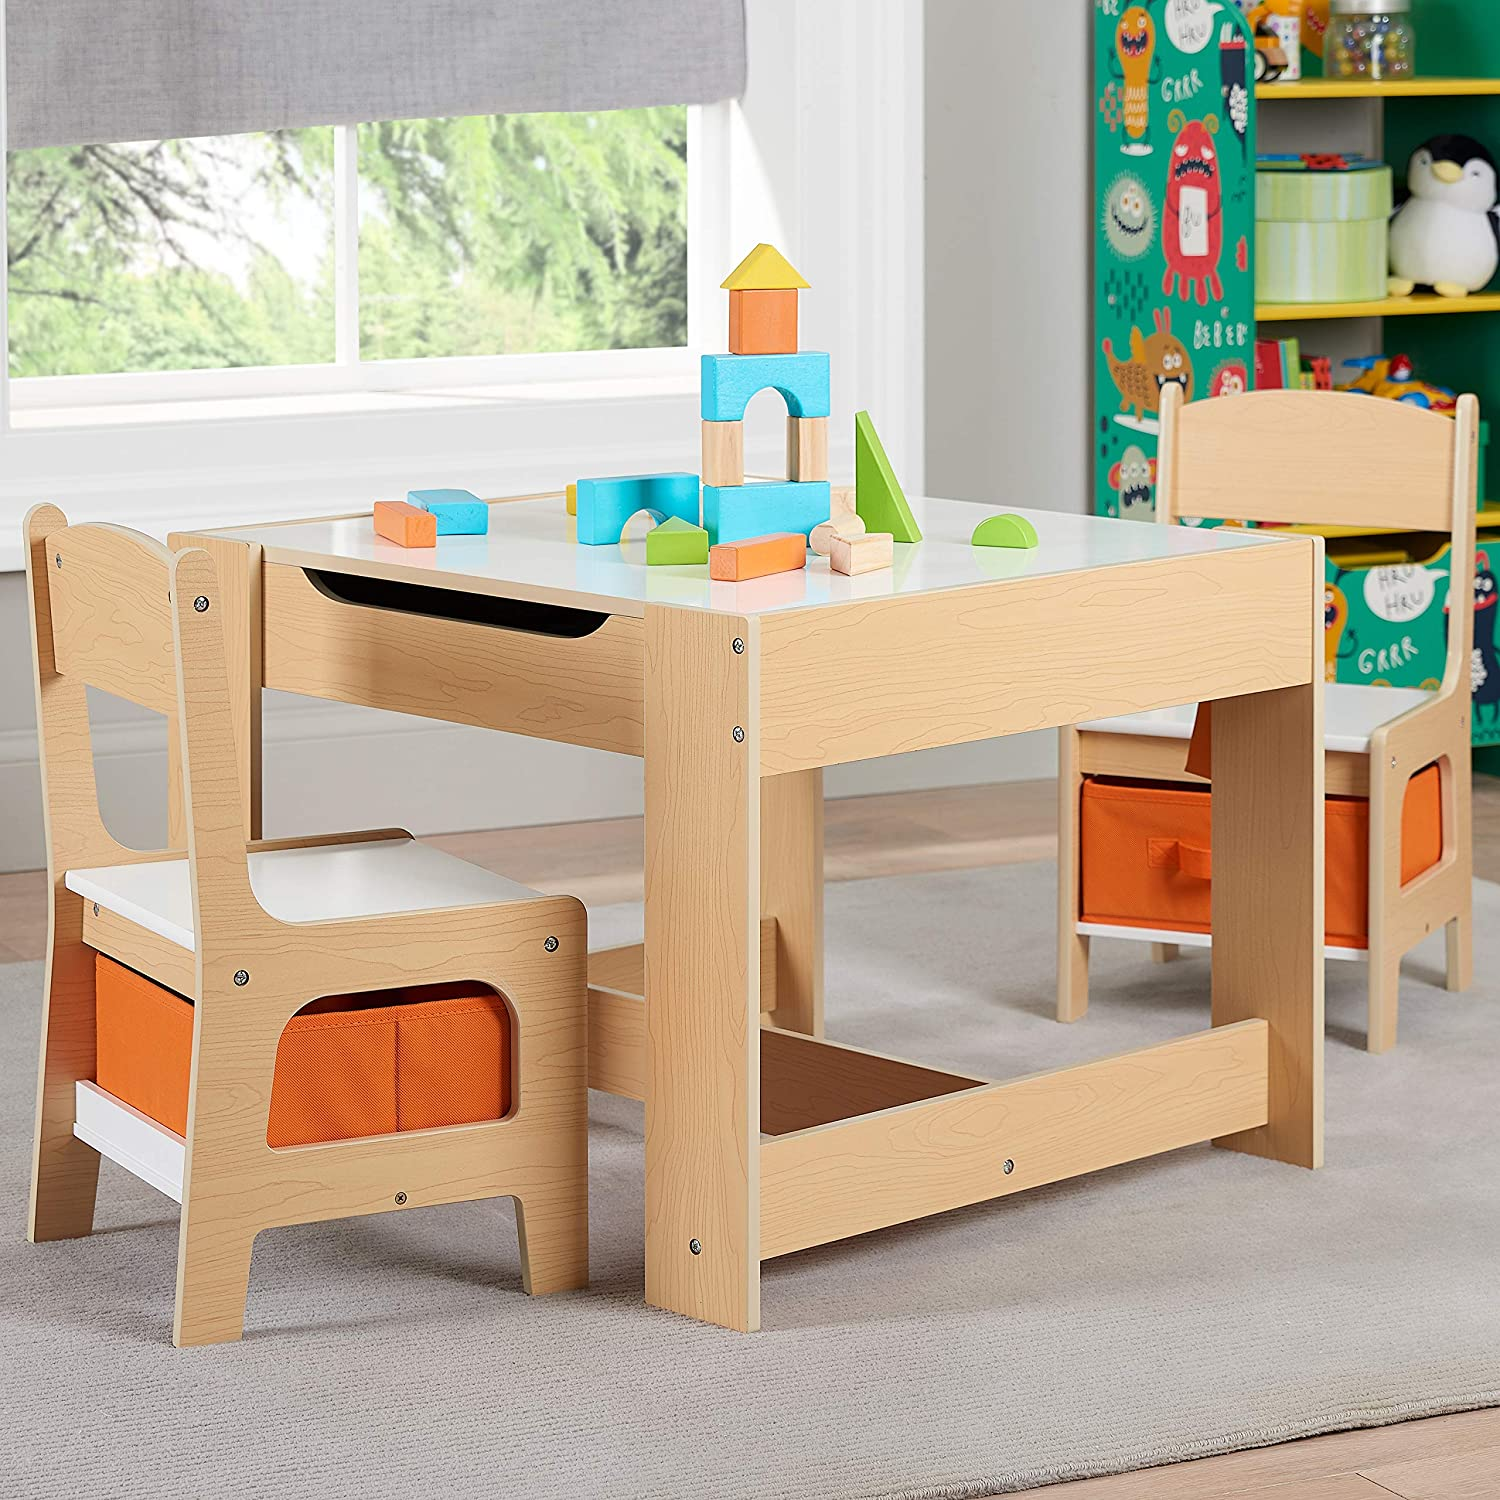 Remarkable Amazon Com Unique Sturdy Smartly Crafted Kids Wooden Pabps2019 Chair Design Images Pabps2019Com